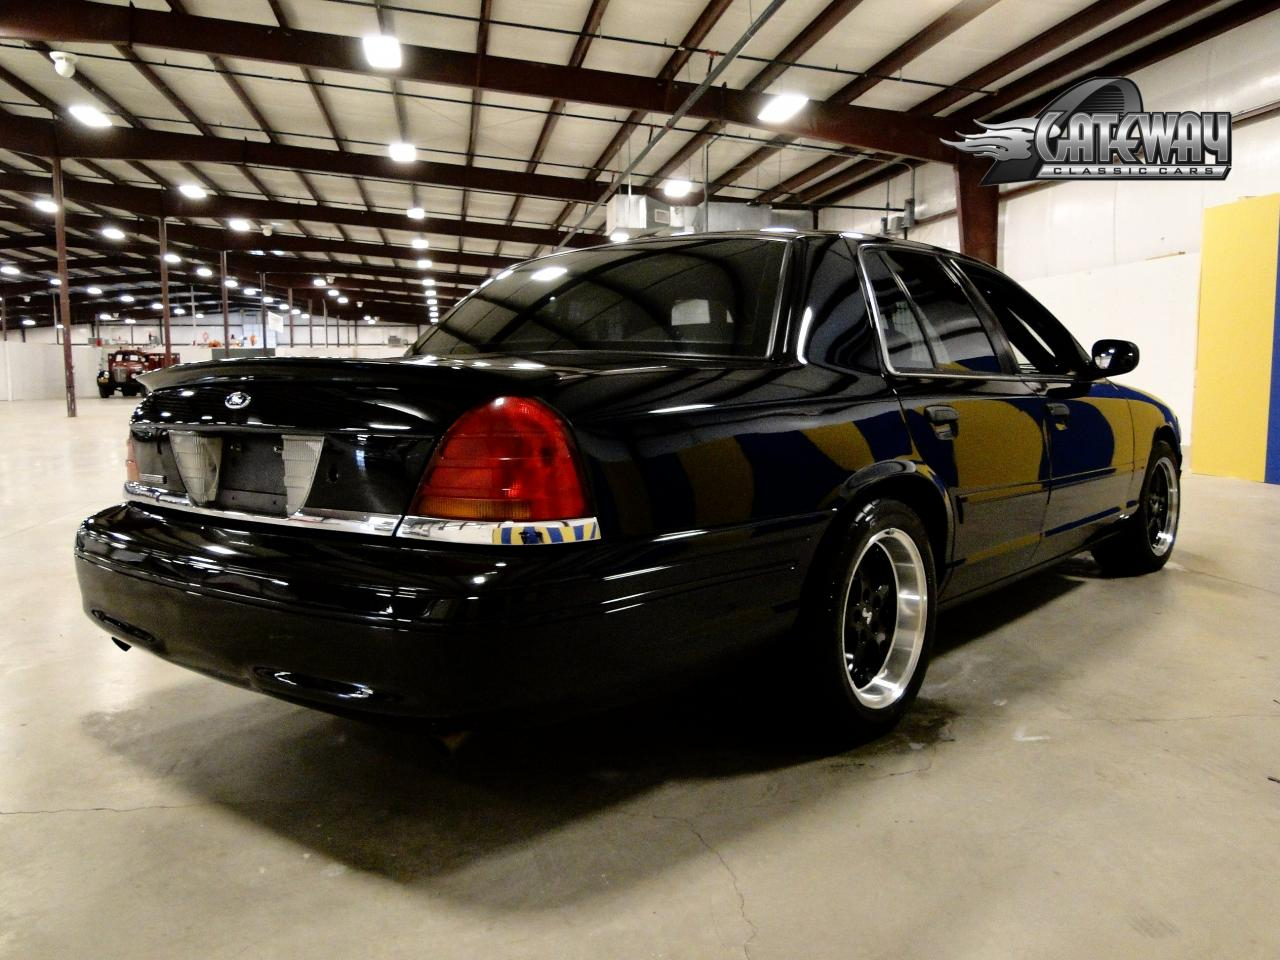 1999 crown victoria police interceptor manual